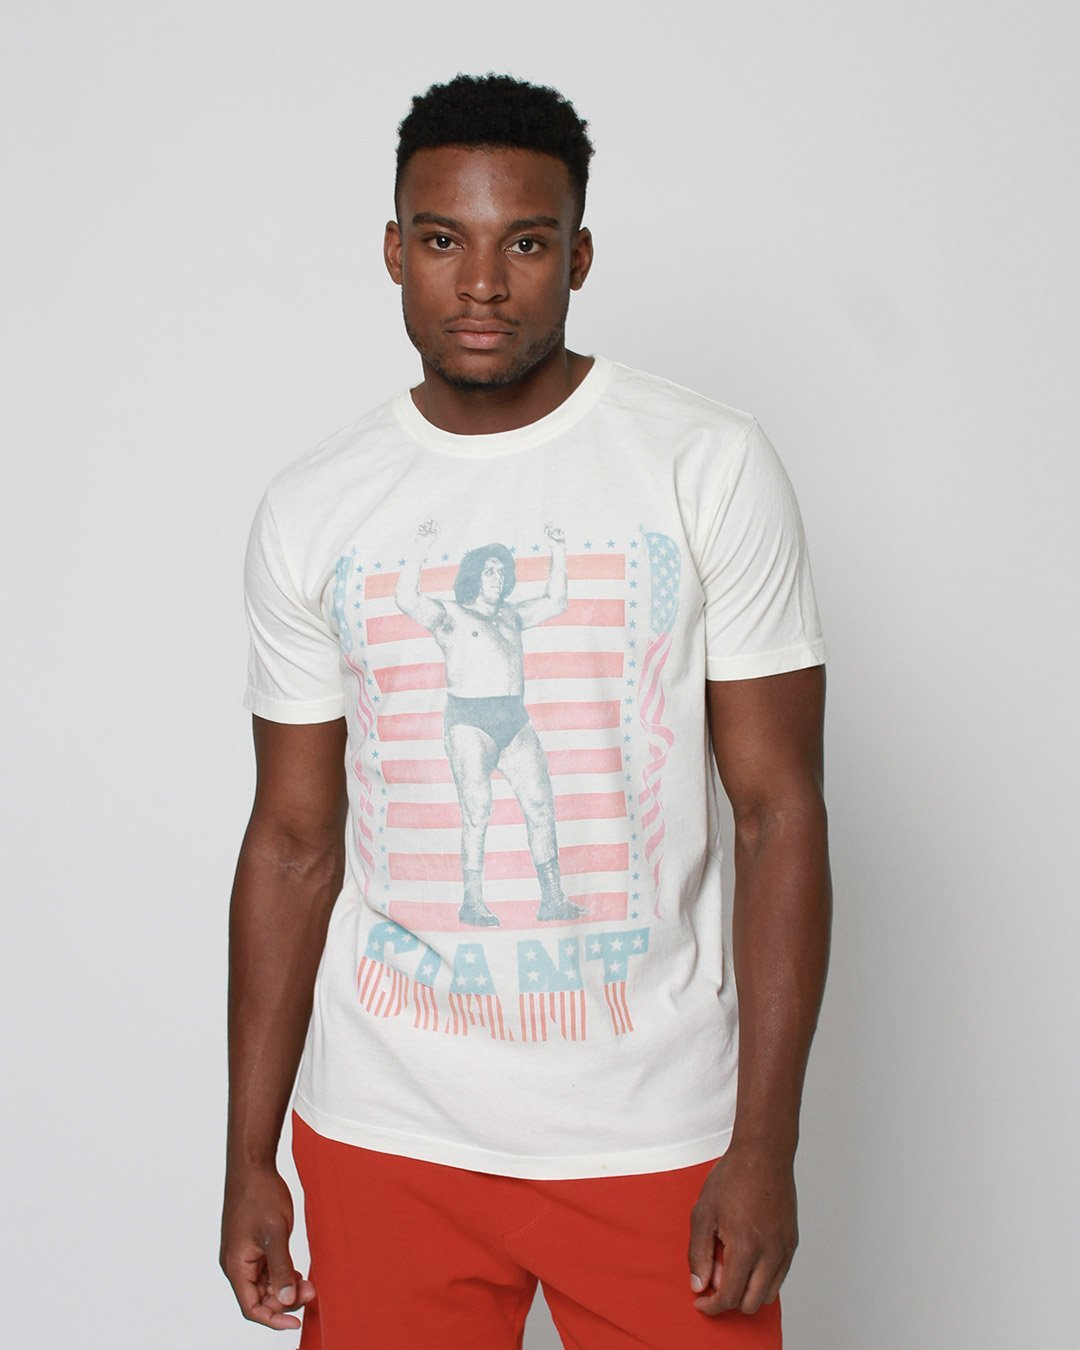 Andre the Giant Americana Tee - Copasetic Clothing Ltd. dba Roots of Fight